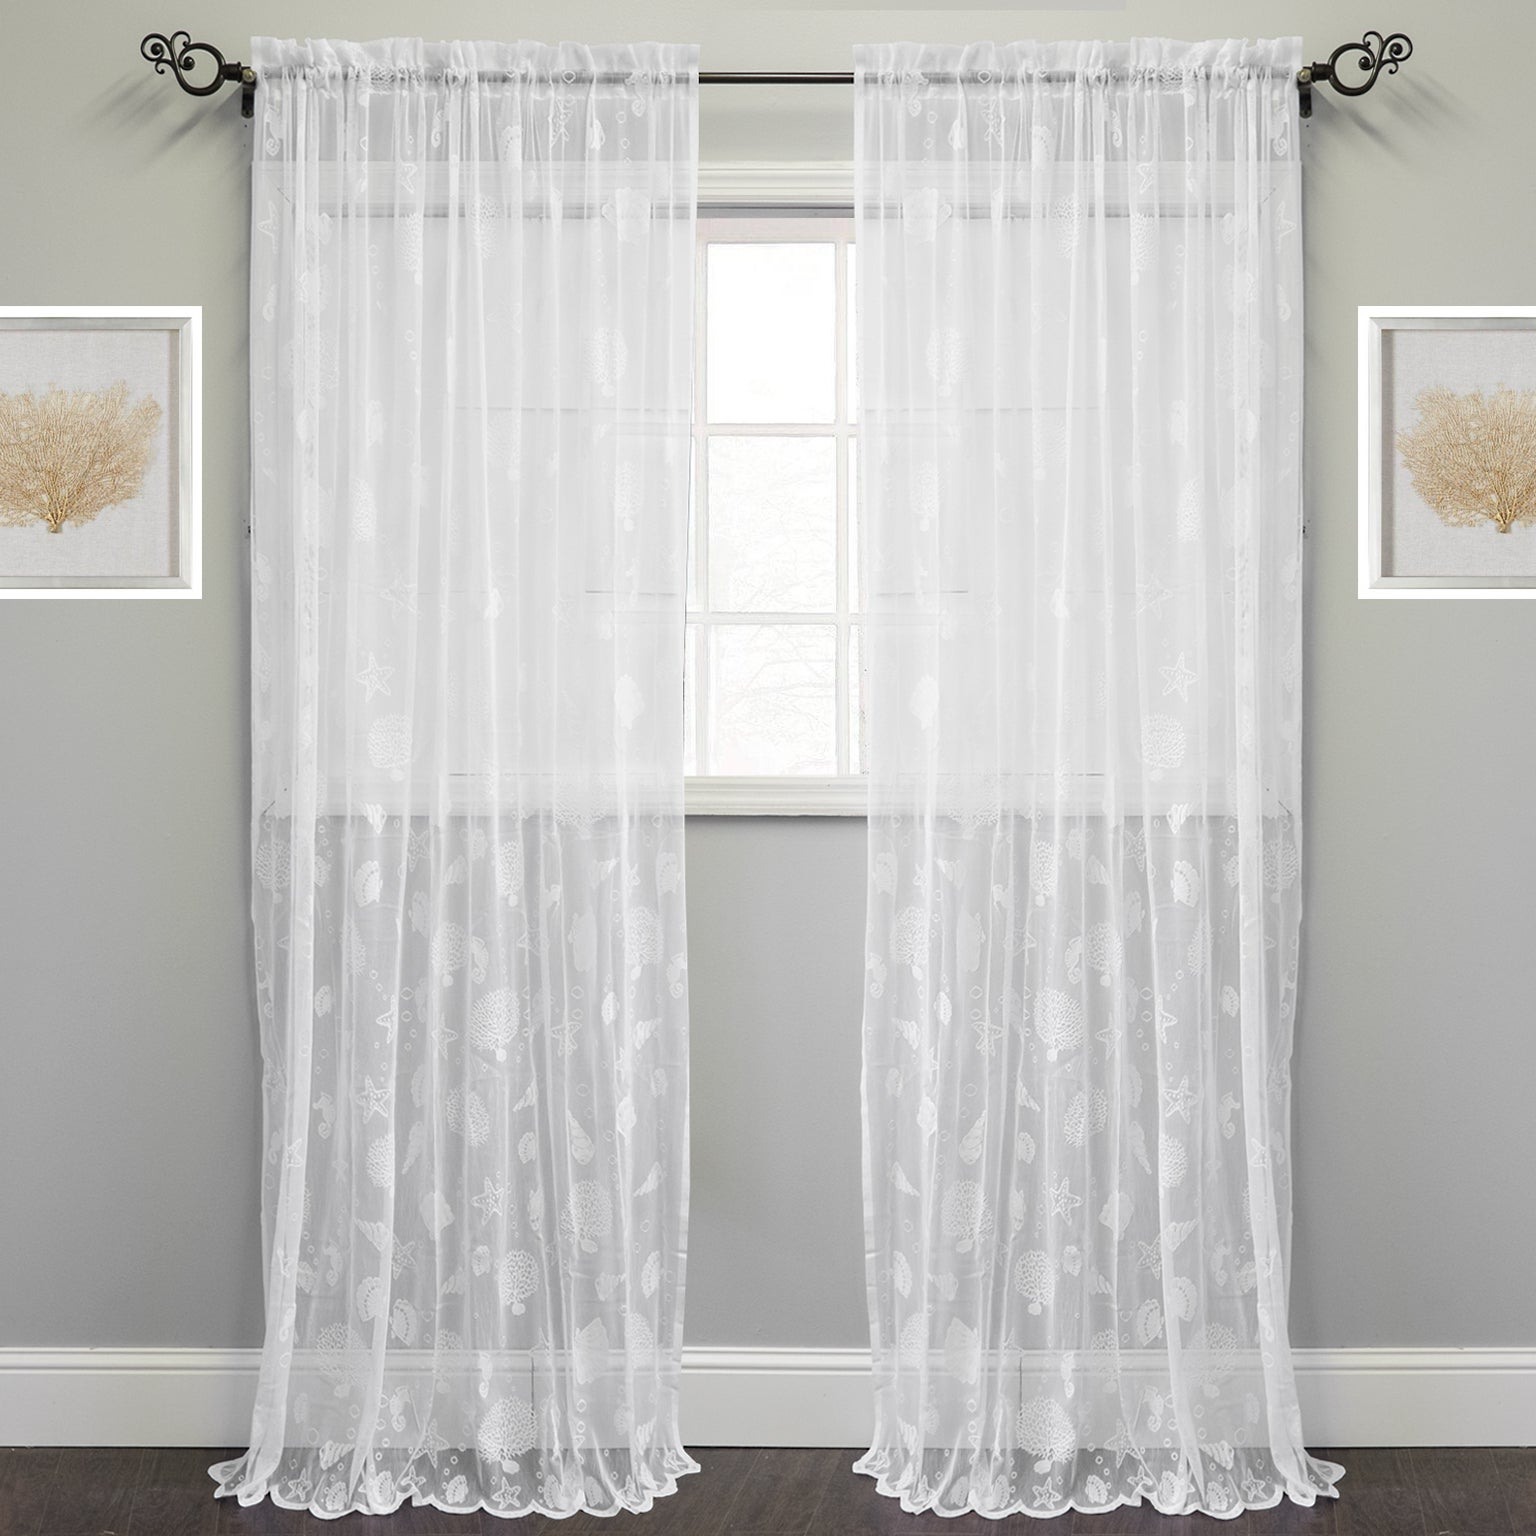 Widely Used Marine Life Motif Knitted Lace Window Curtain Pieces Pertaining To Marine Life Motif Knitted Lace Window Curtain Panel (View 6 of 20)